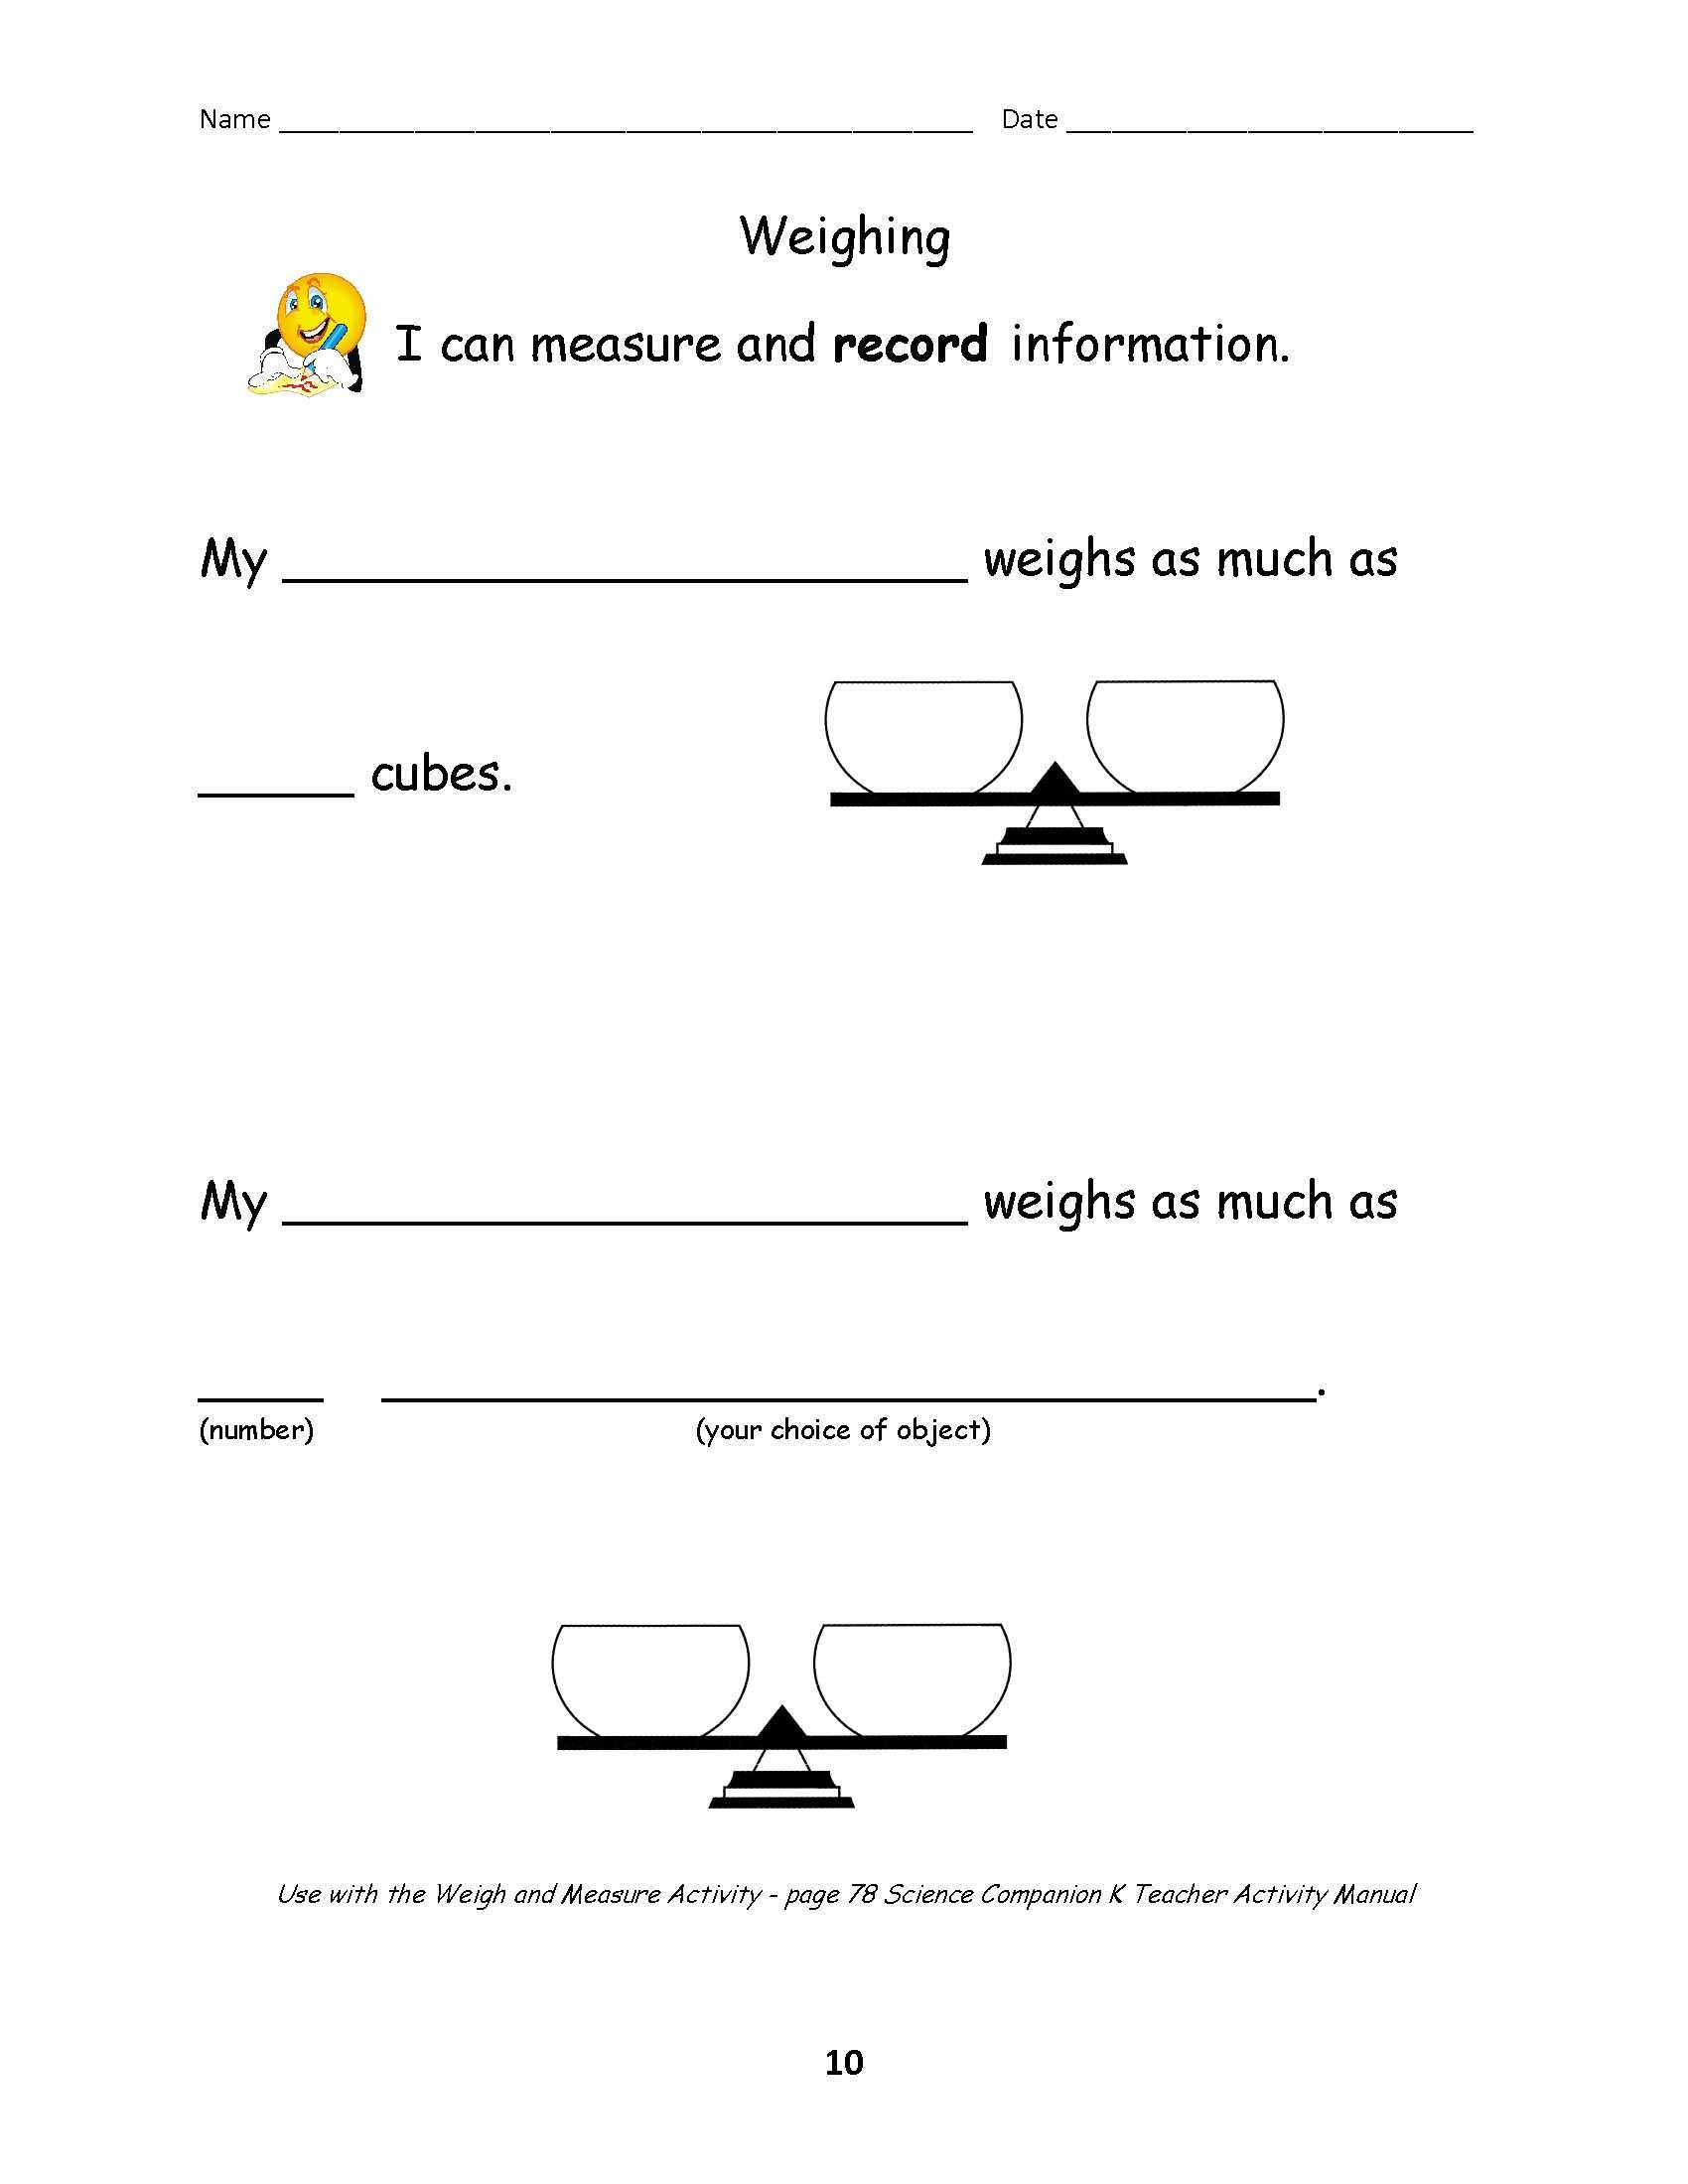 Science Instruments and Measurement Worksheet Answers with Silly Science Worksheet Answers Worksheets for All